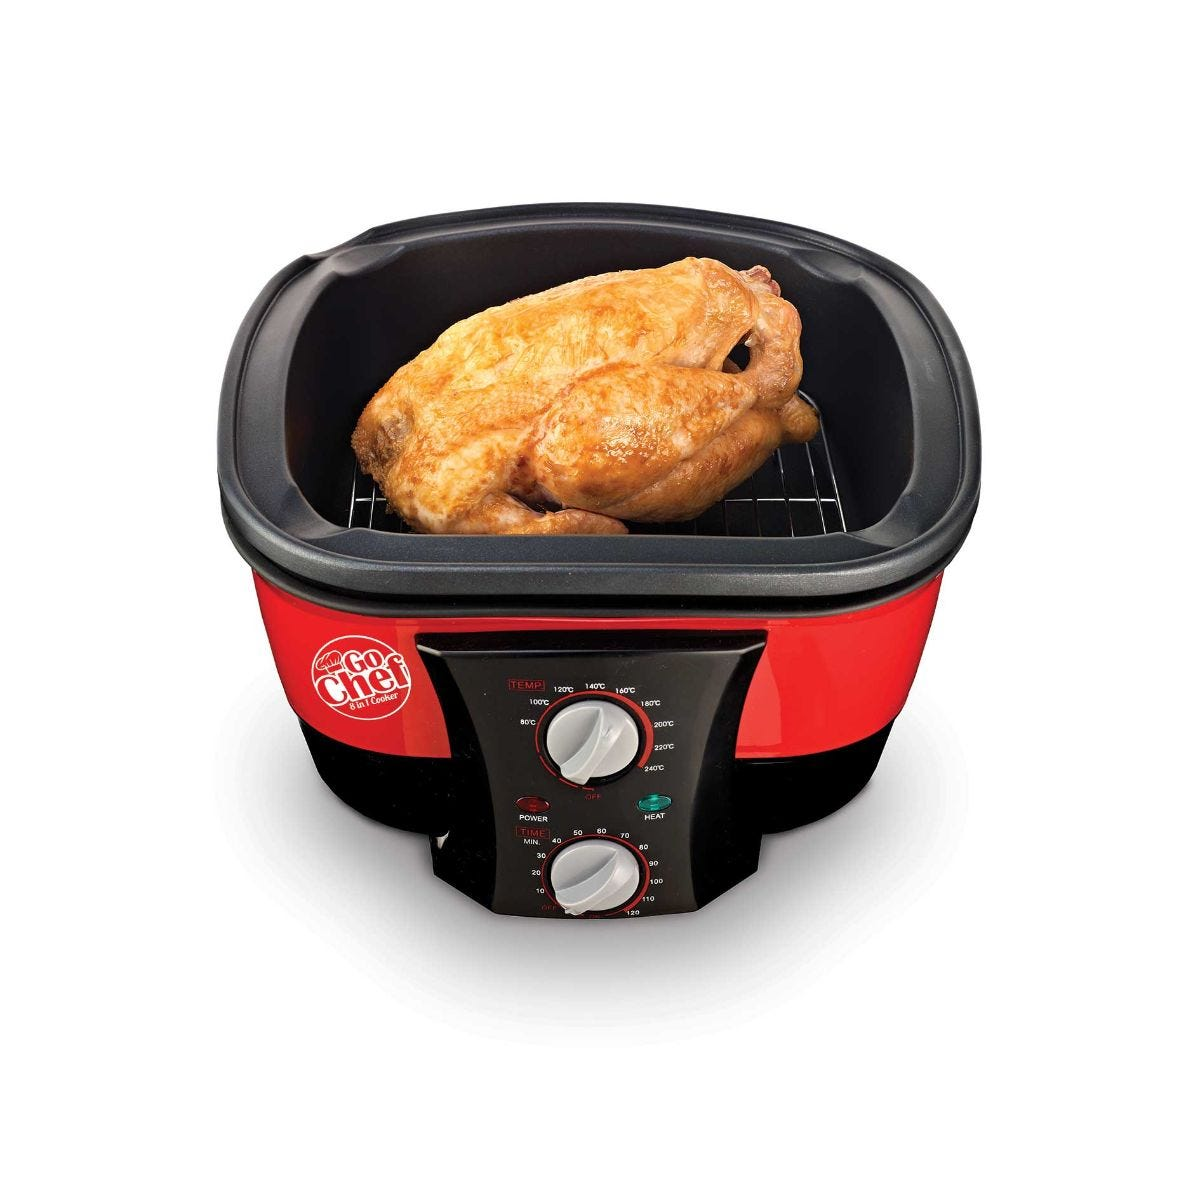 Image of Go Chef 8 in 1 Cooker